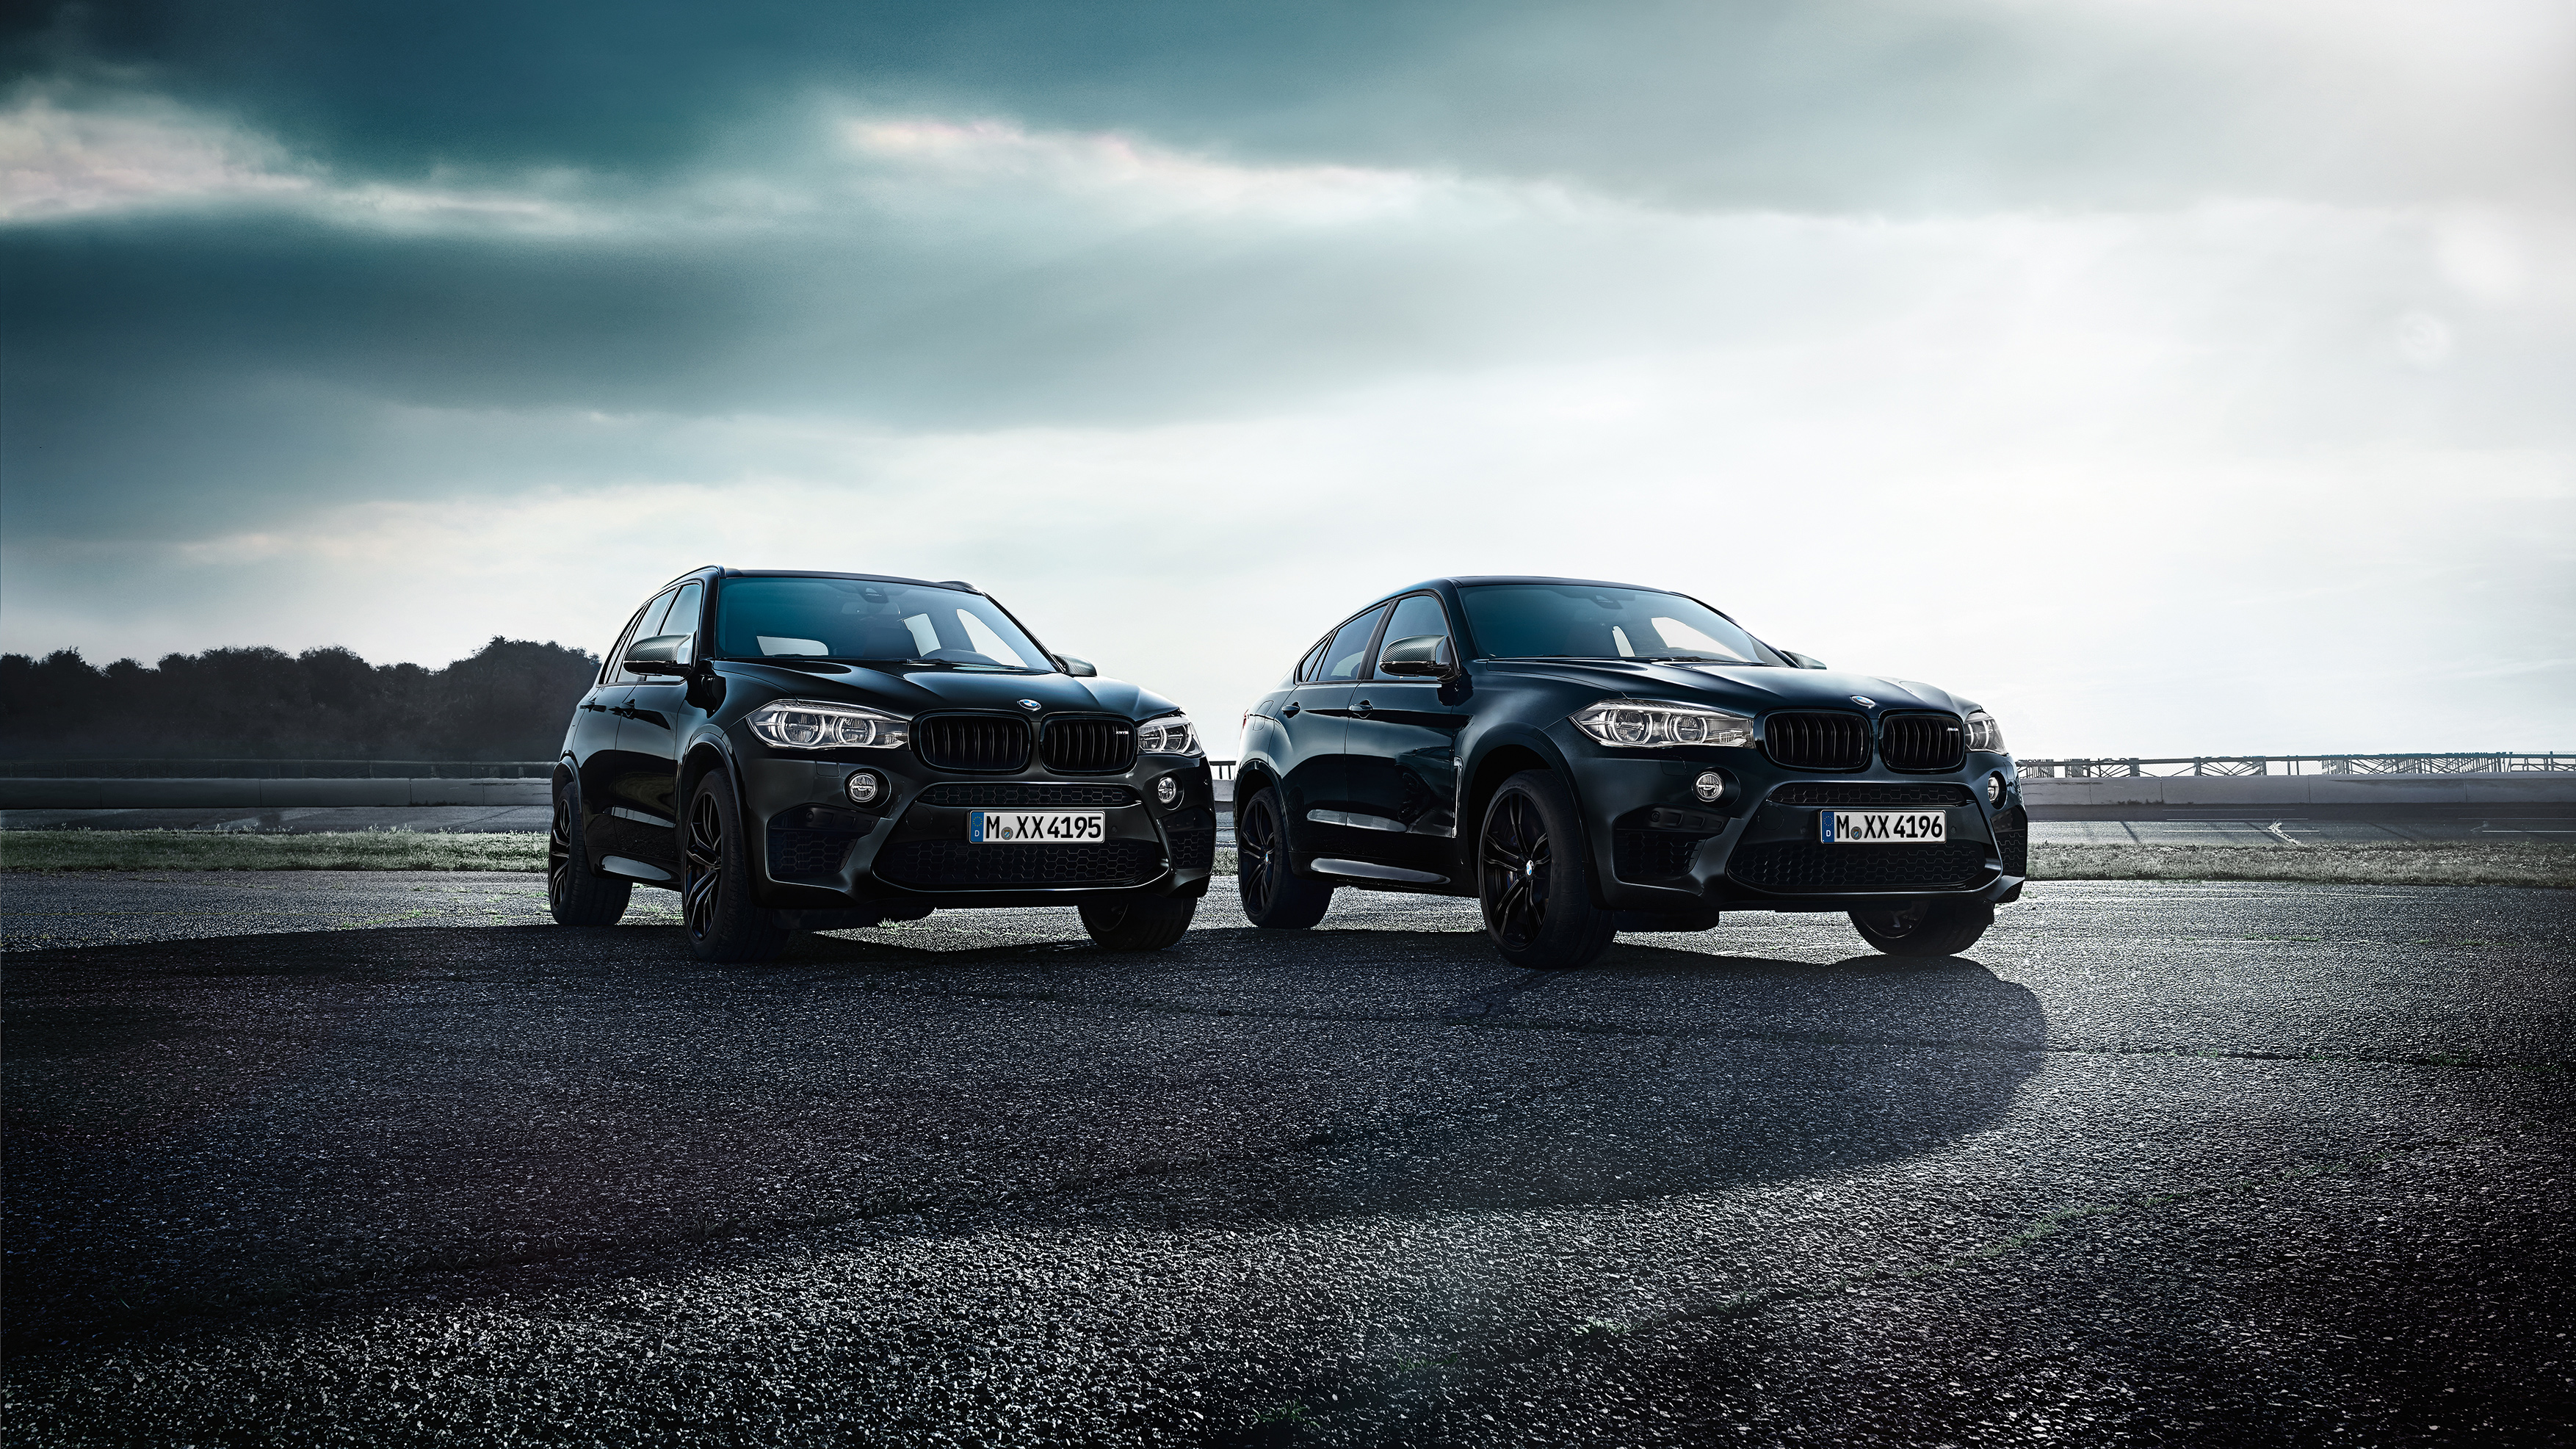 bmw x5 and x6 m edition black fire 2017 wallpaper hd car wallpapers id 7925. Black Bedroom Furniture Sets. Home Design Ideas